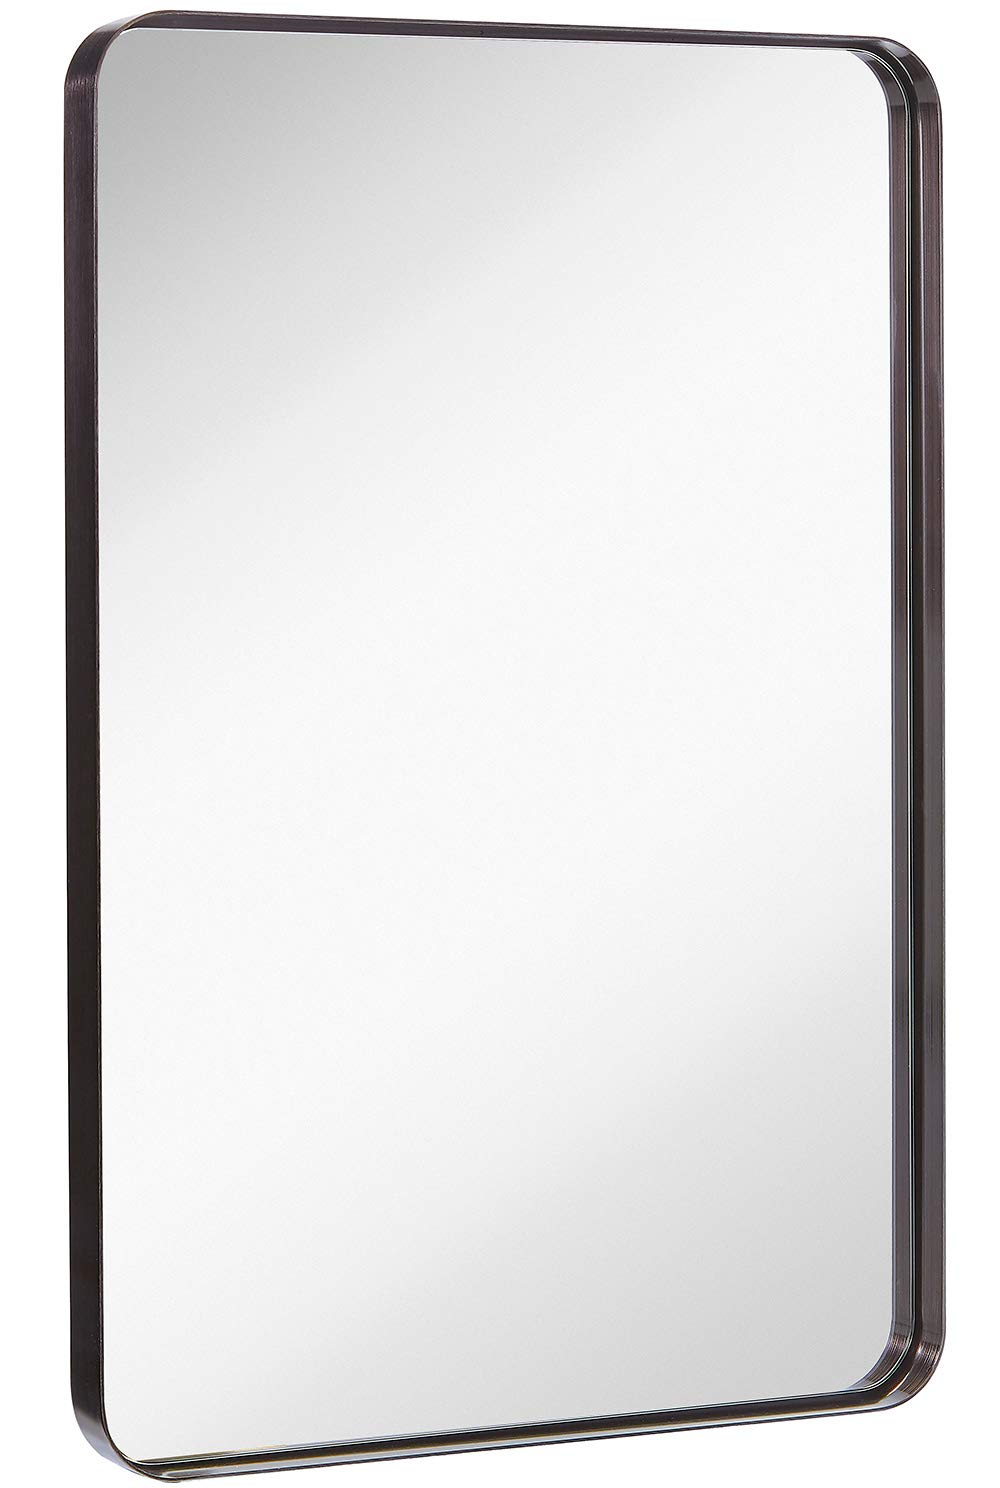 Hamilton Hills Contemporary Brushed Metal Wall Mirror | Glass Panel Black Framed Rounded Corner Deep Set Design | Mirrored Rectangle Hangs Horizontal or Vertical (24'' x 36'') by Hamilton Hills